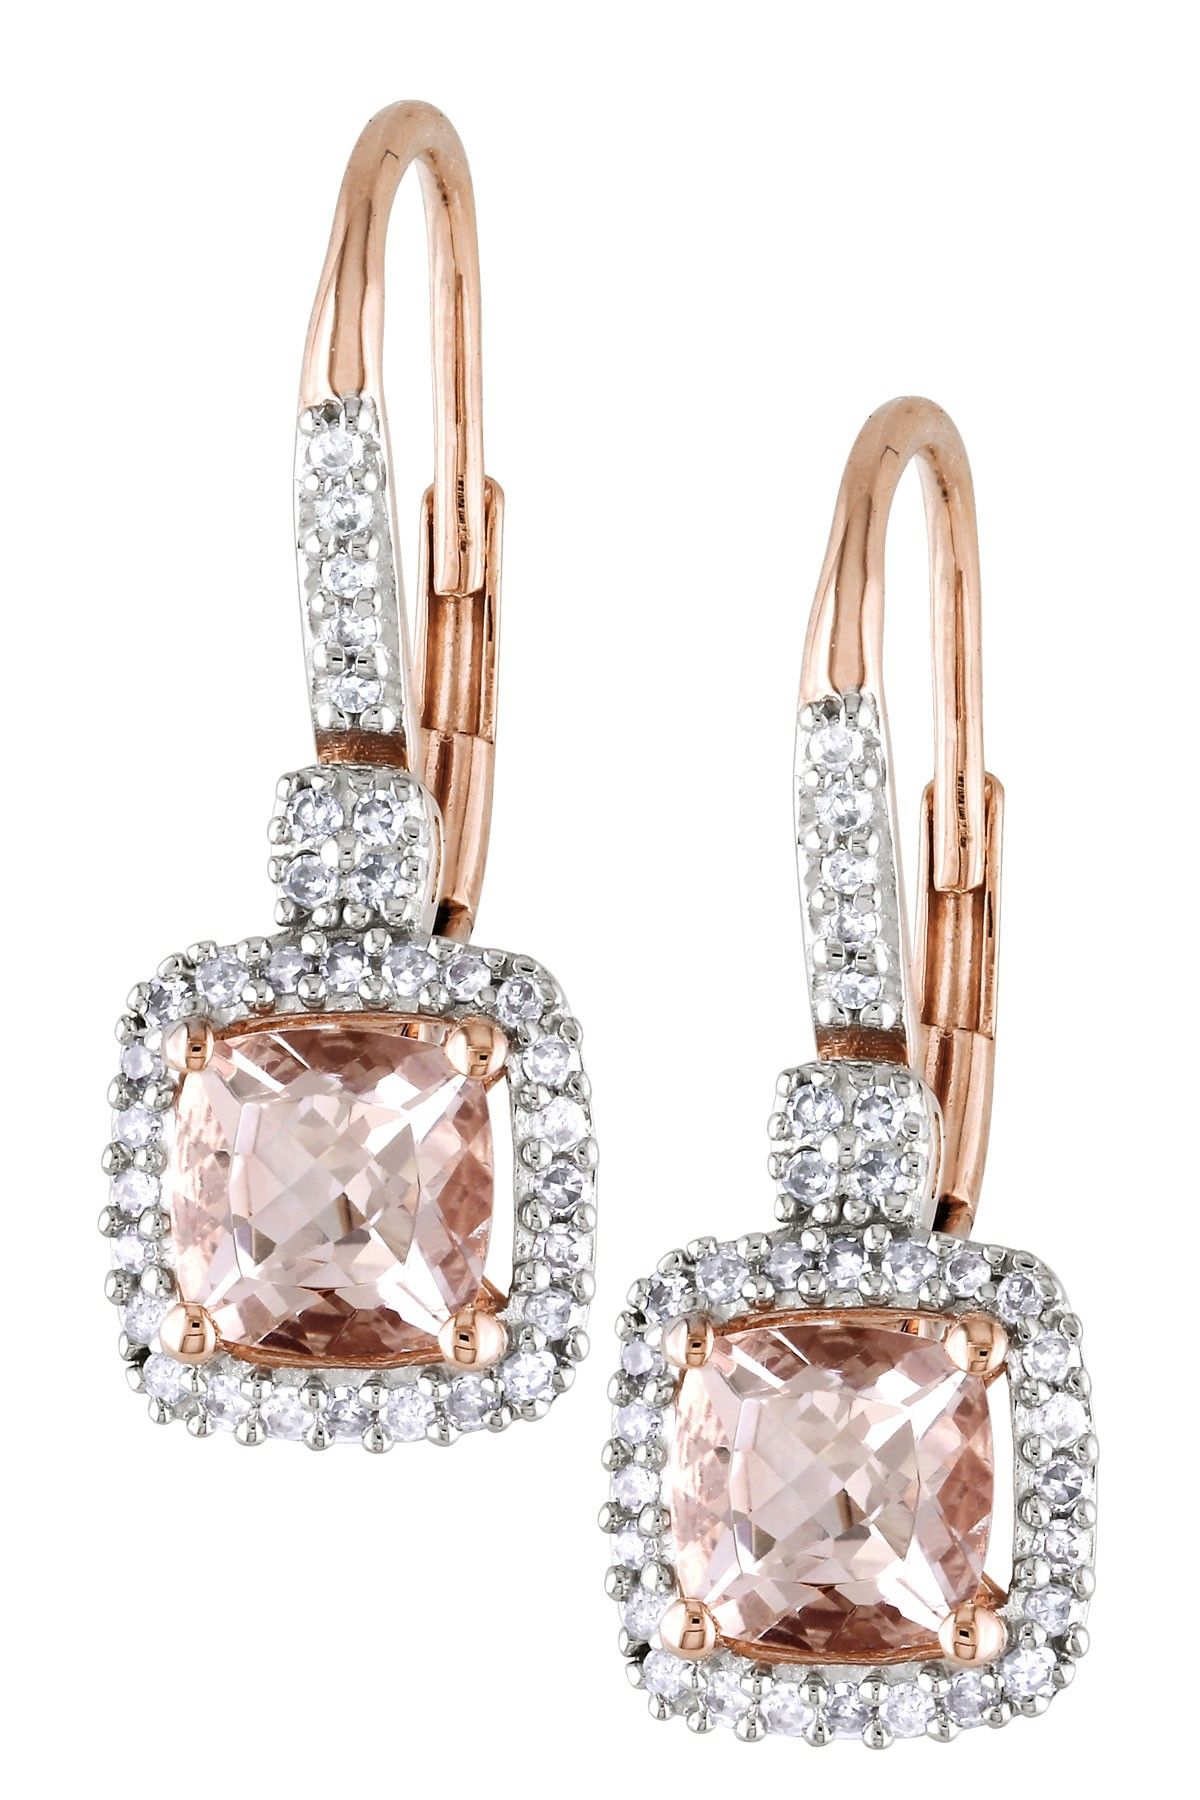 10K Rose Gold Morganite Diamond Trim Earrings on HauteLook